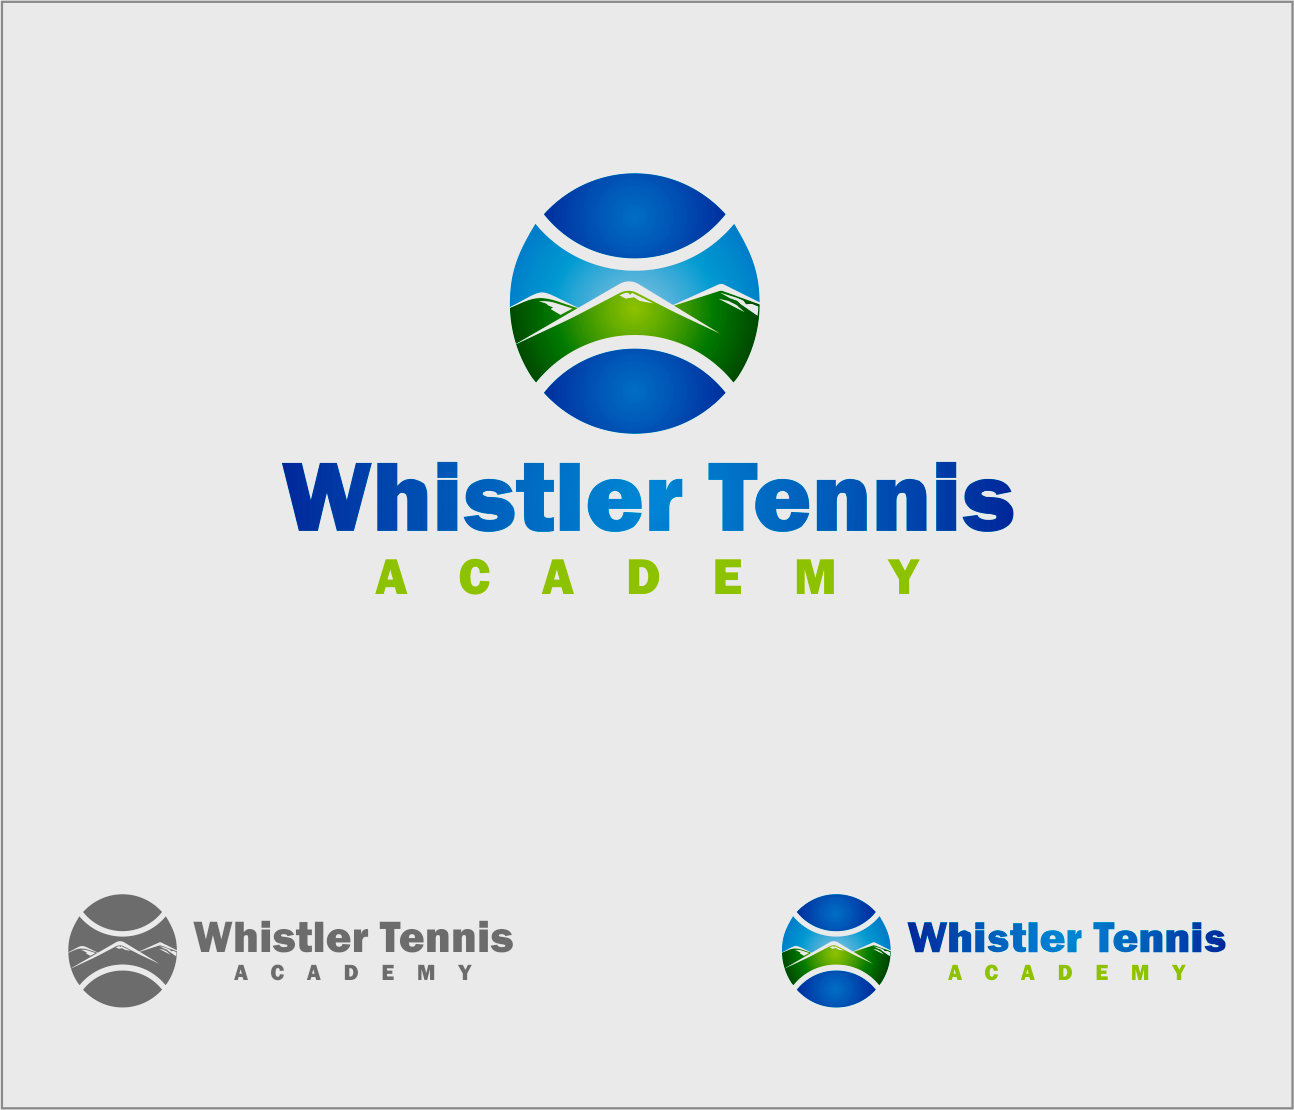 Logo Design by Armada Jamaluddin - Entry No. 217 in the Logo Design Contest Imaginative Logo Design for Whistler Tennis Academy.